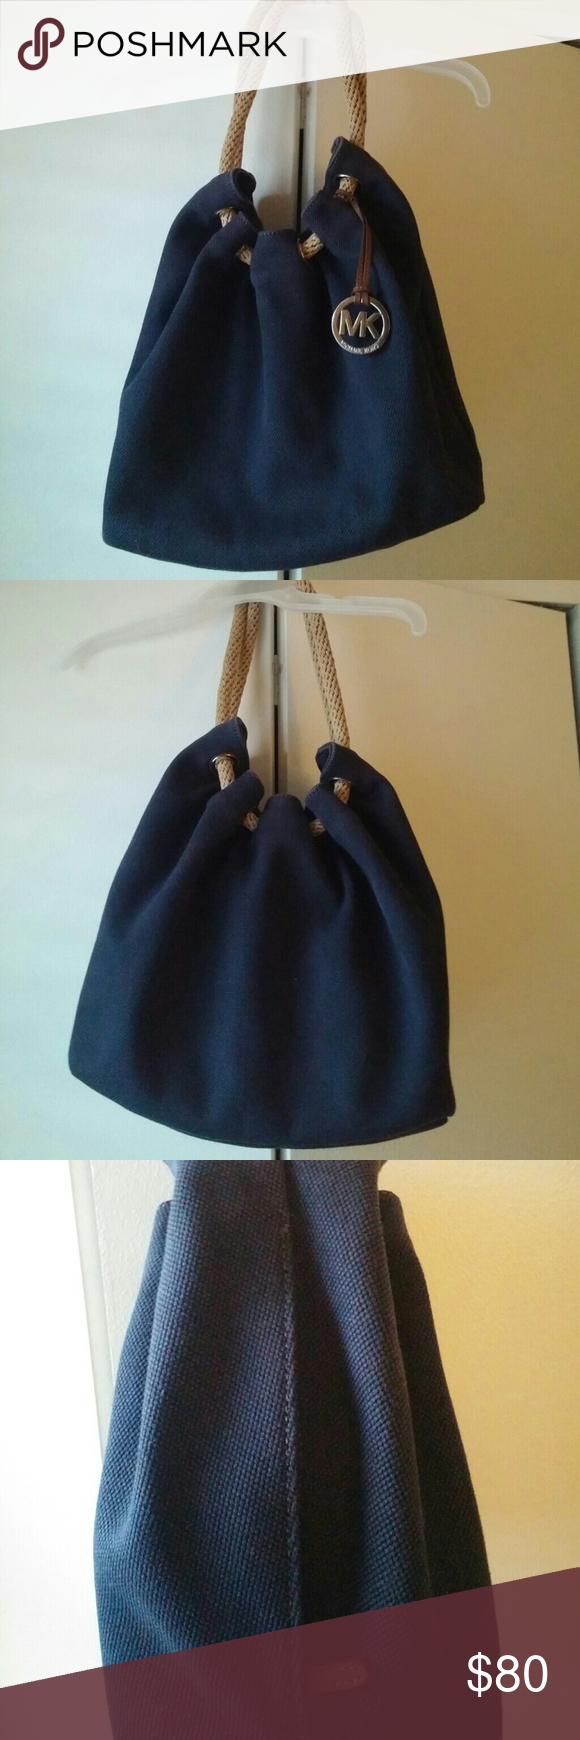 """Michael Kors Marina Navy Large Shoulder purse Measures approximately 15.5"""" tall x 10.5""""w x 6.5 """" deep... Has side zipper pocket & Hang tag... Gently used condition with no signs of age or wear & tear.... Michael Kors Bags Shoulder Bags"""